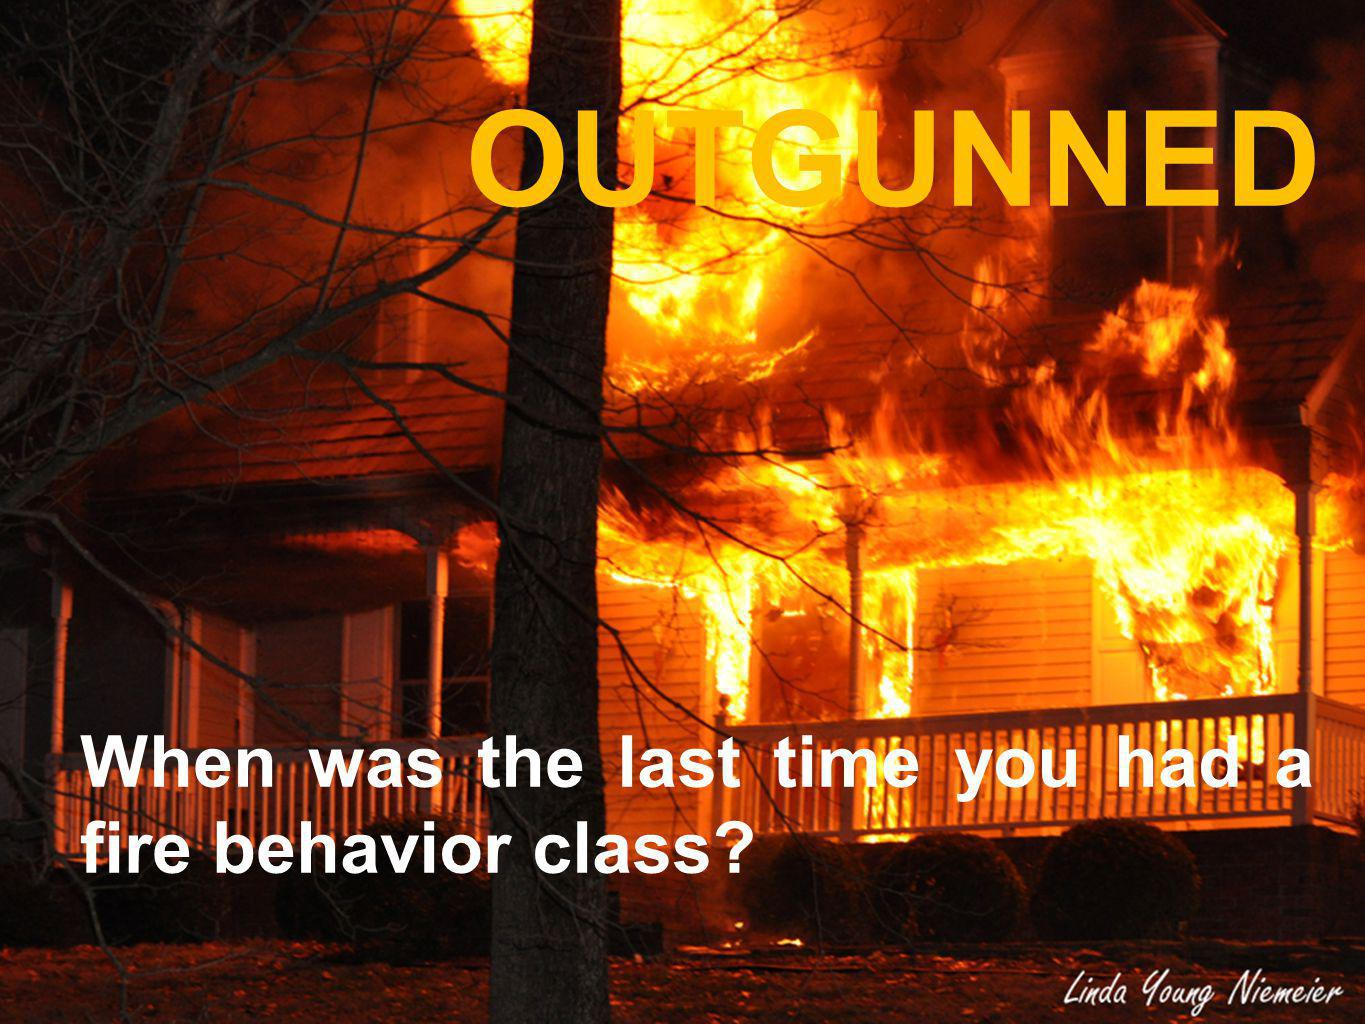 OUTGUNNED When was the last time you had a fire behavior class